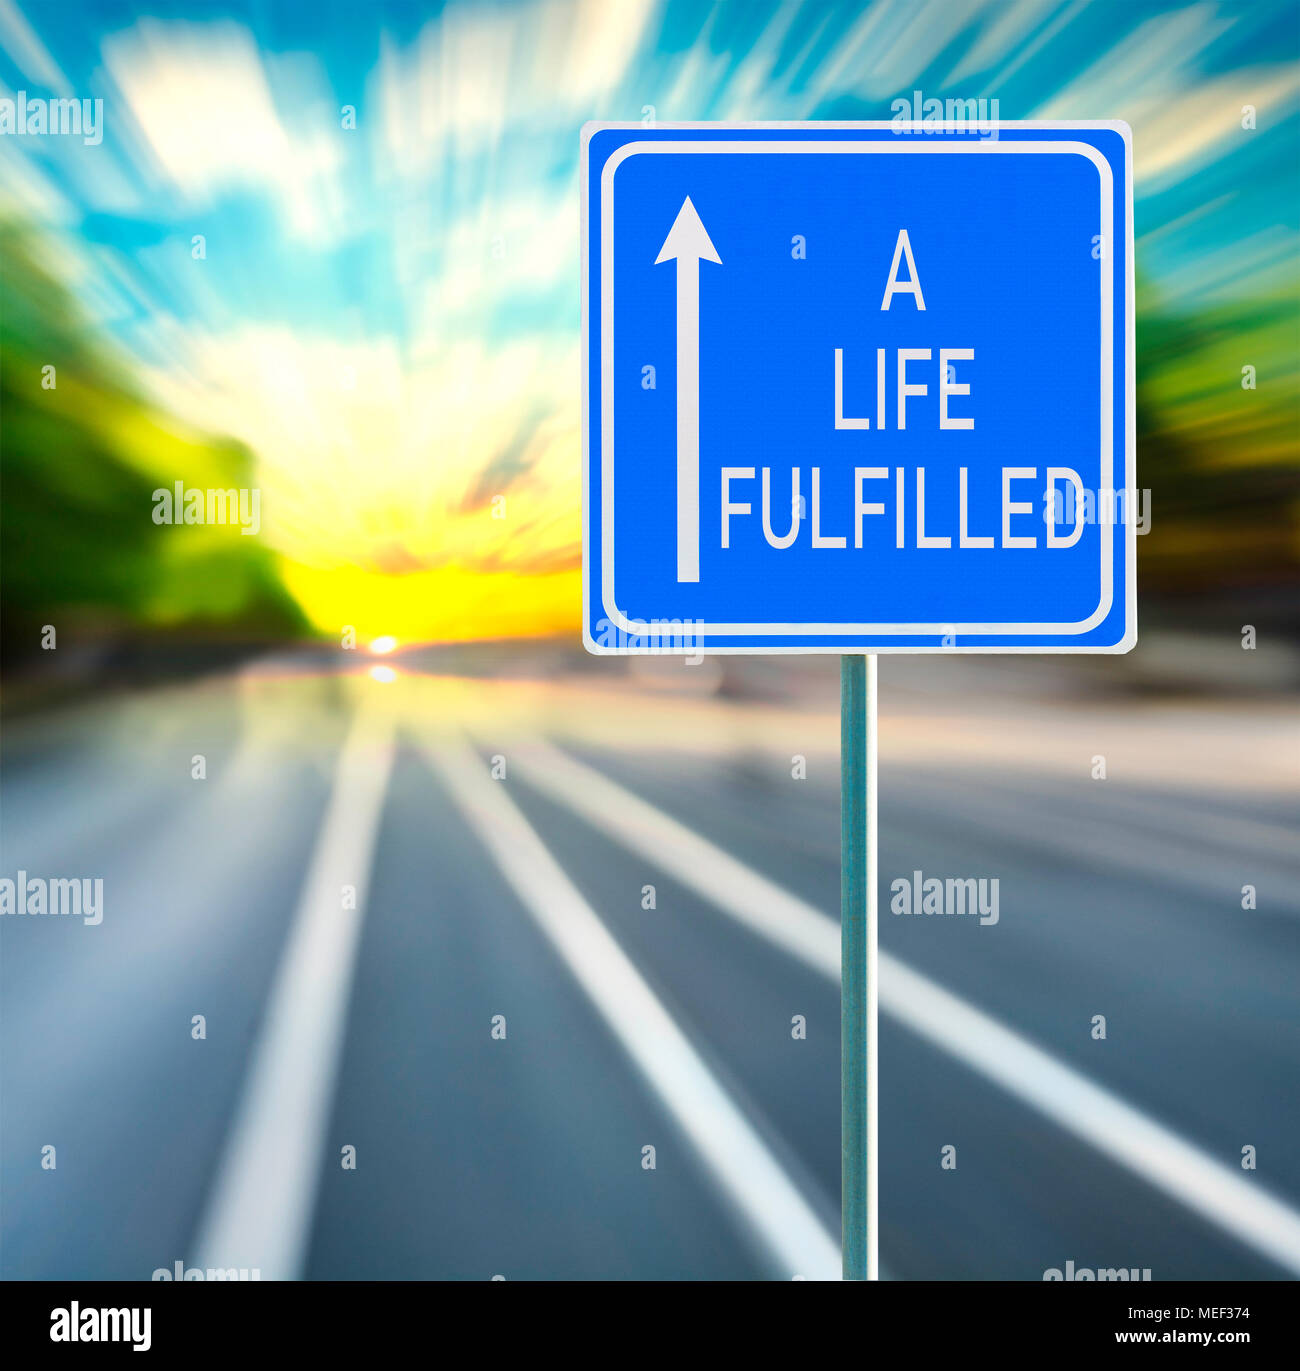 A life fulfilled motivational phrase on blue road sign with arrow and blurred speedy background in sunset. Copy space. - Stock Image